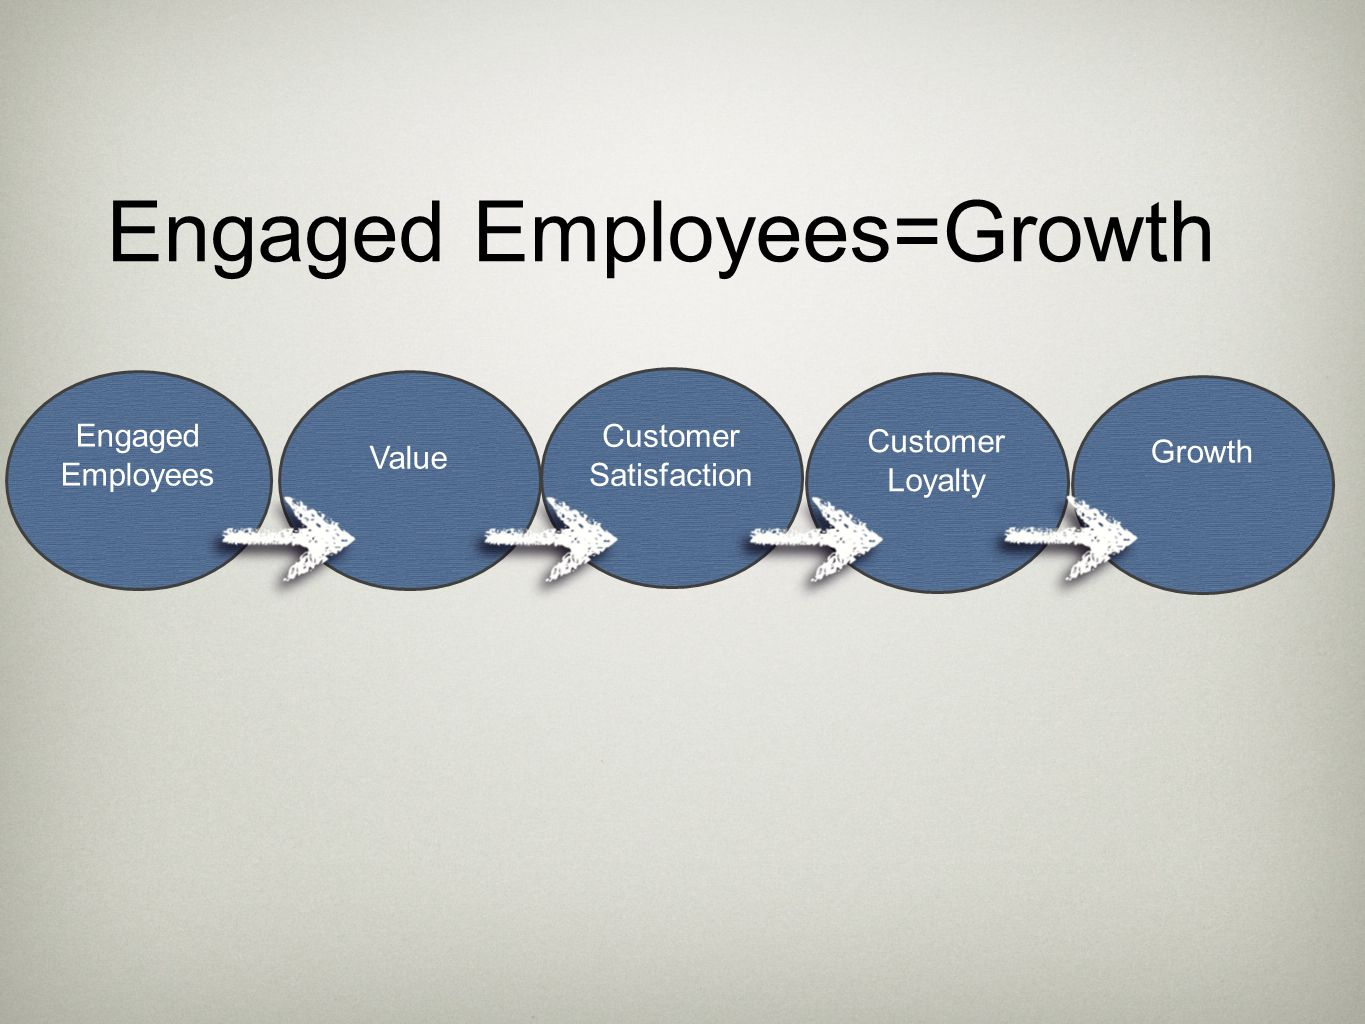 Engaged Employees Value Customer Satisfaction Customer Loyalty Growth Engaged Employees=Growth